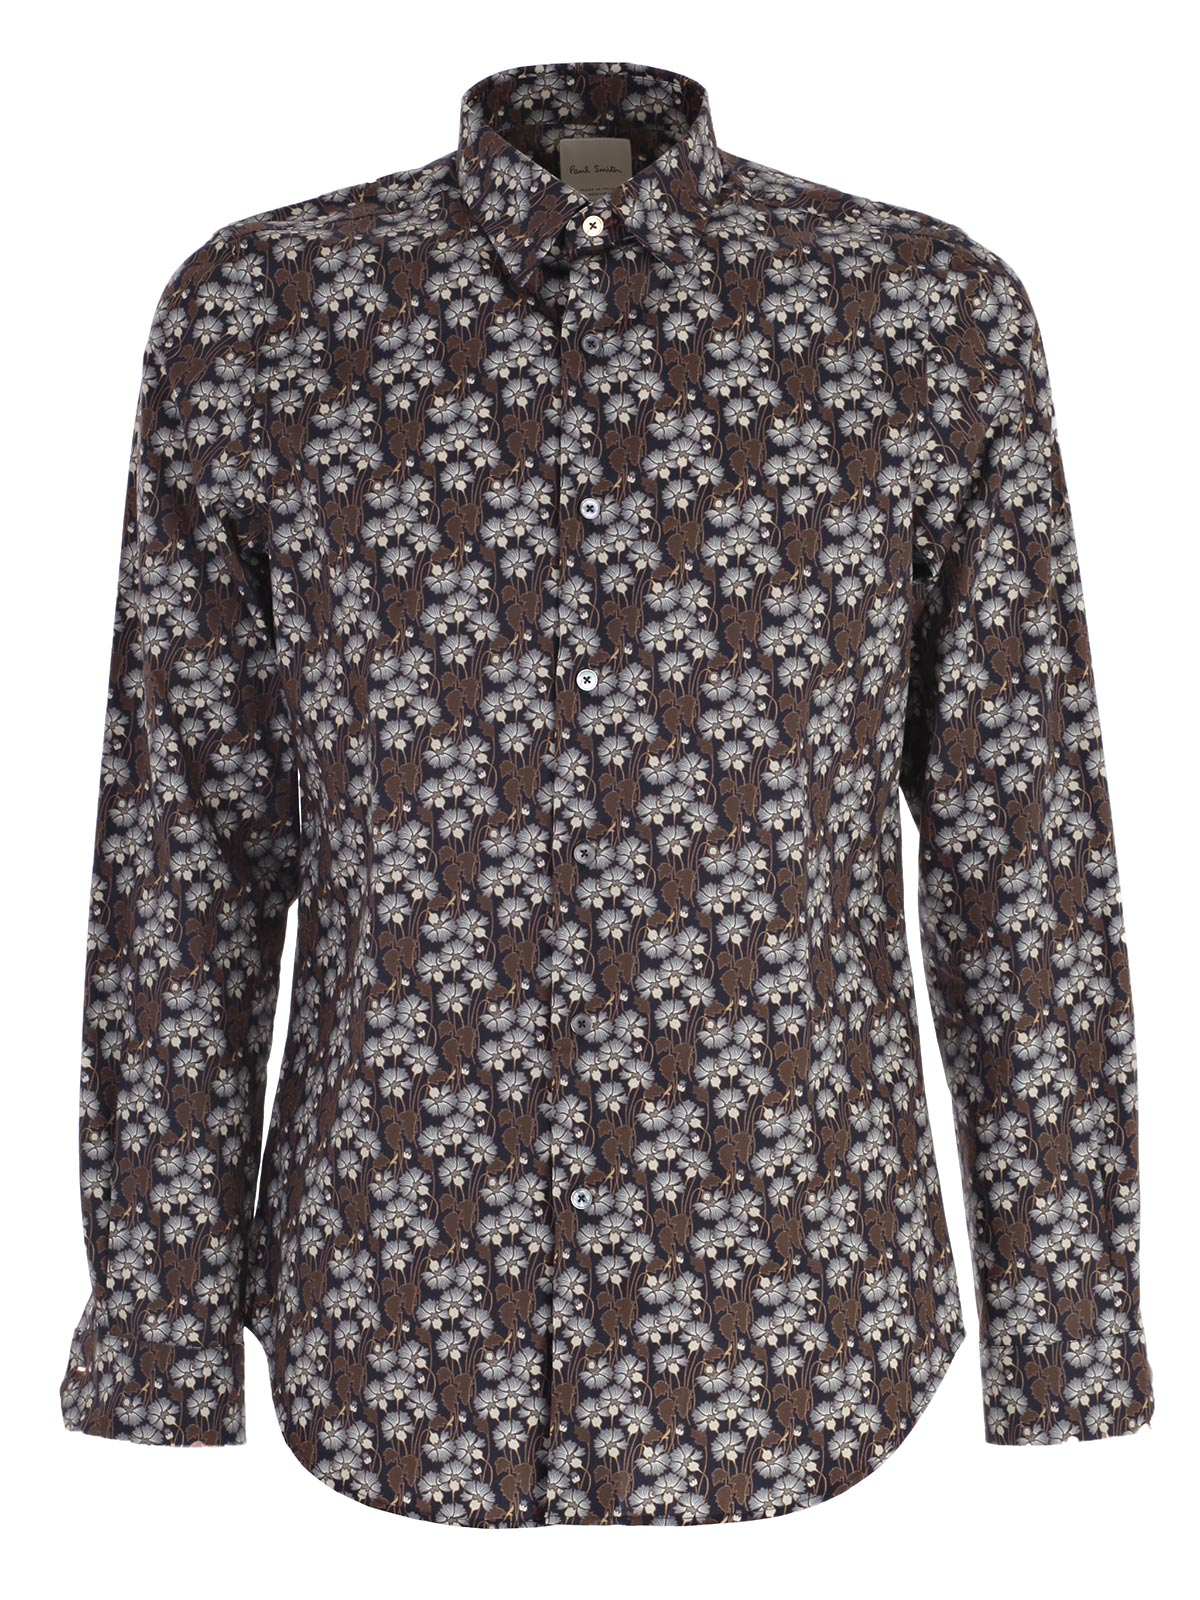 Picture of PAUL SMITH SHIRT CAMICIA STAMPA FIORE